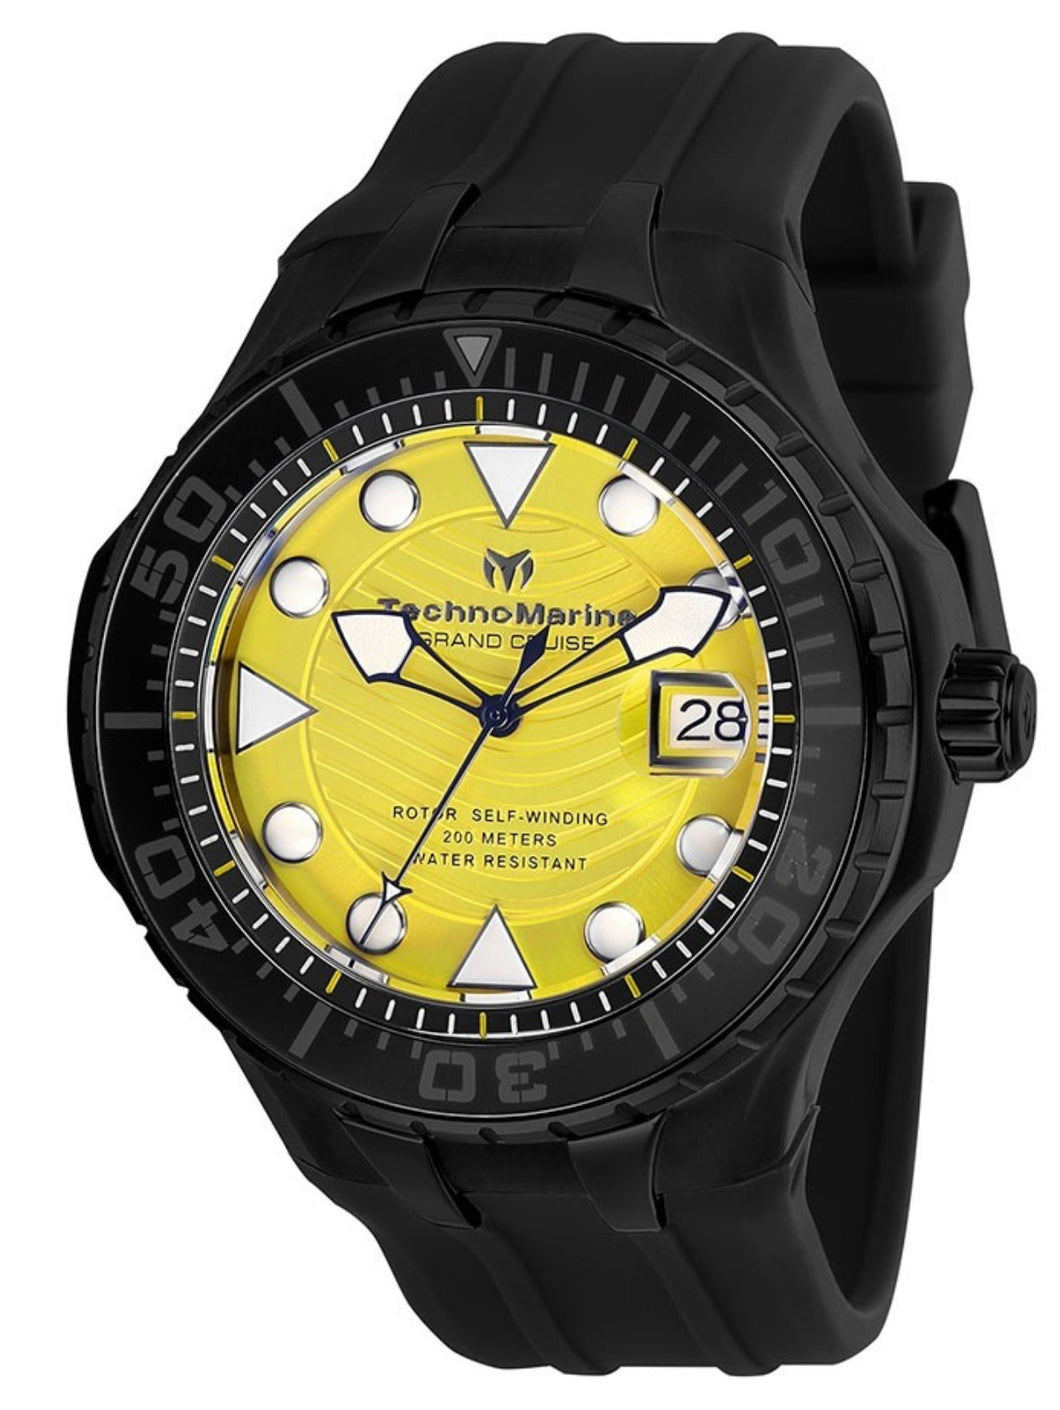 TECHNOMARINE CRUISE MENS AUTOMATIC 48 MM BLACK CASE YELLOW DIAL - MODEL TM-118084 - Boutique Watches & More